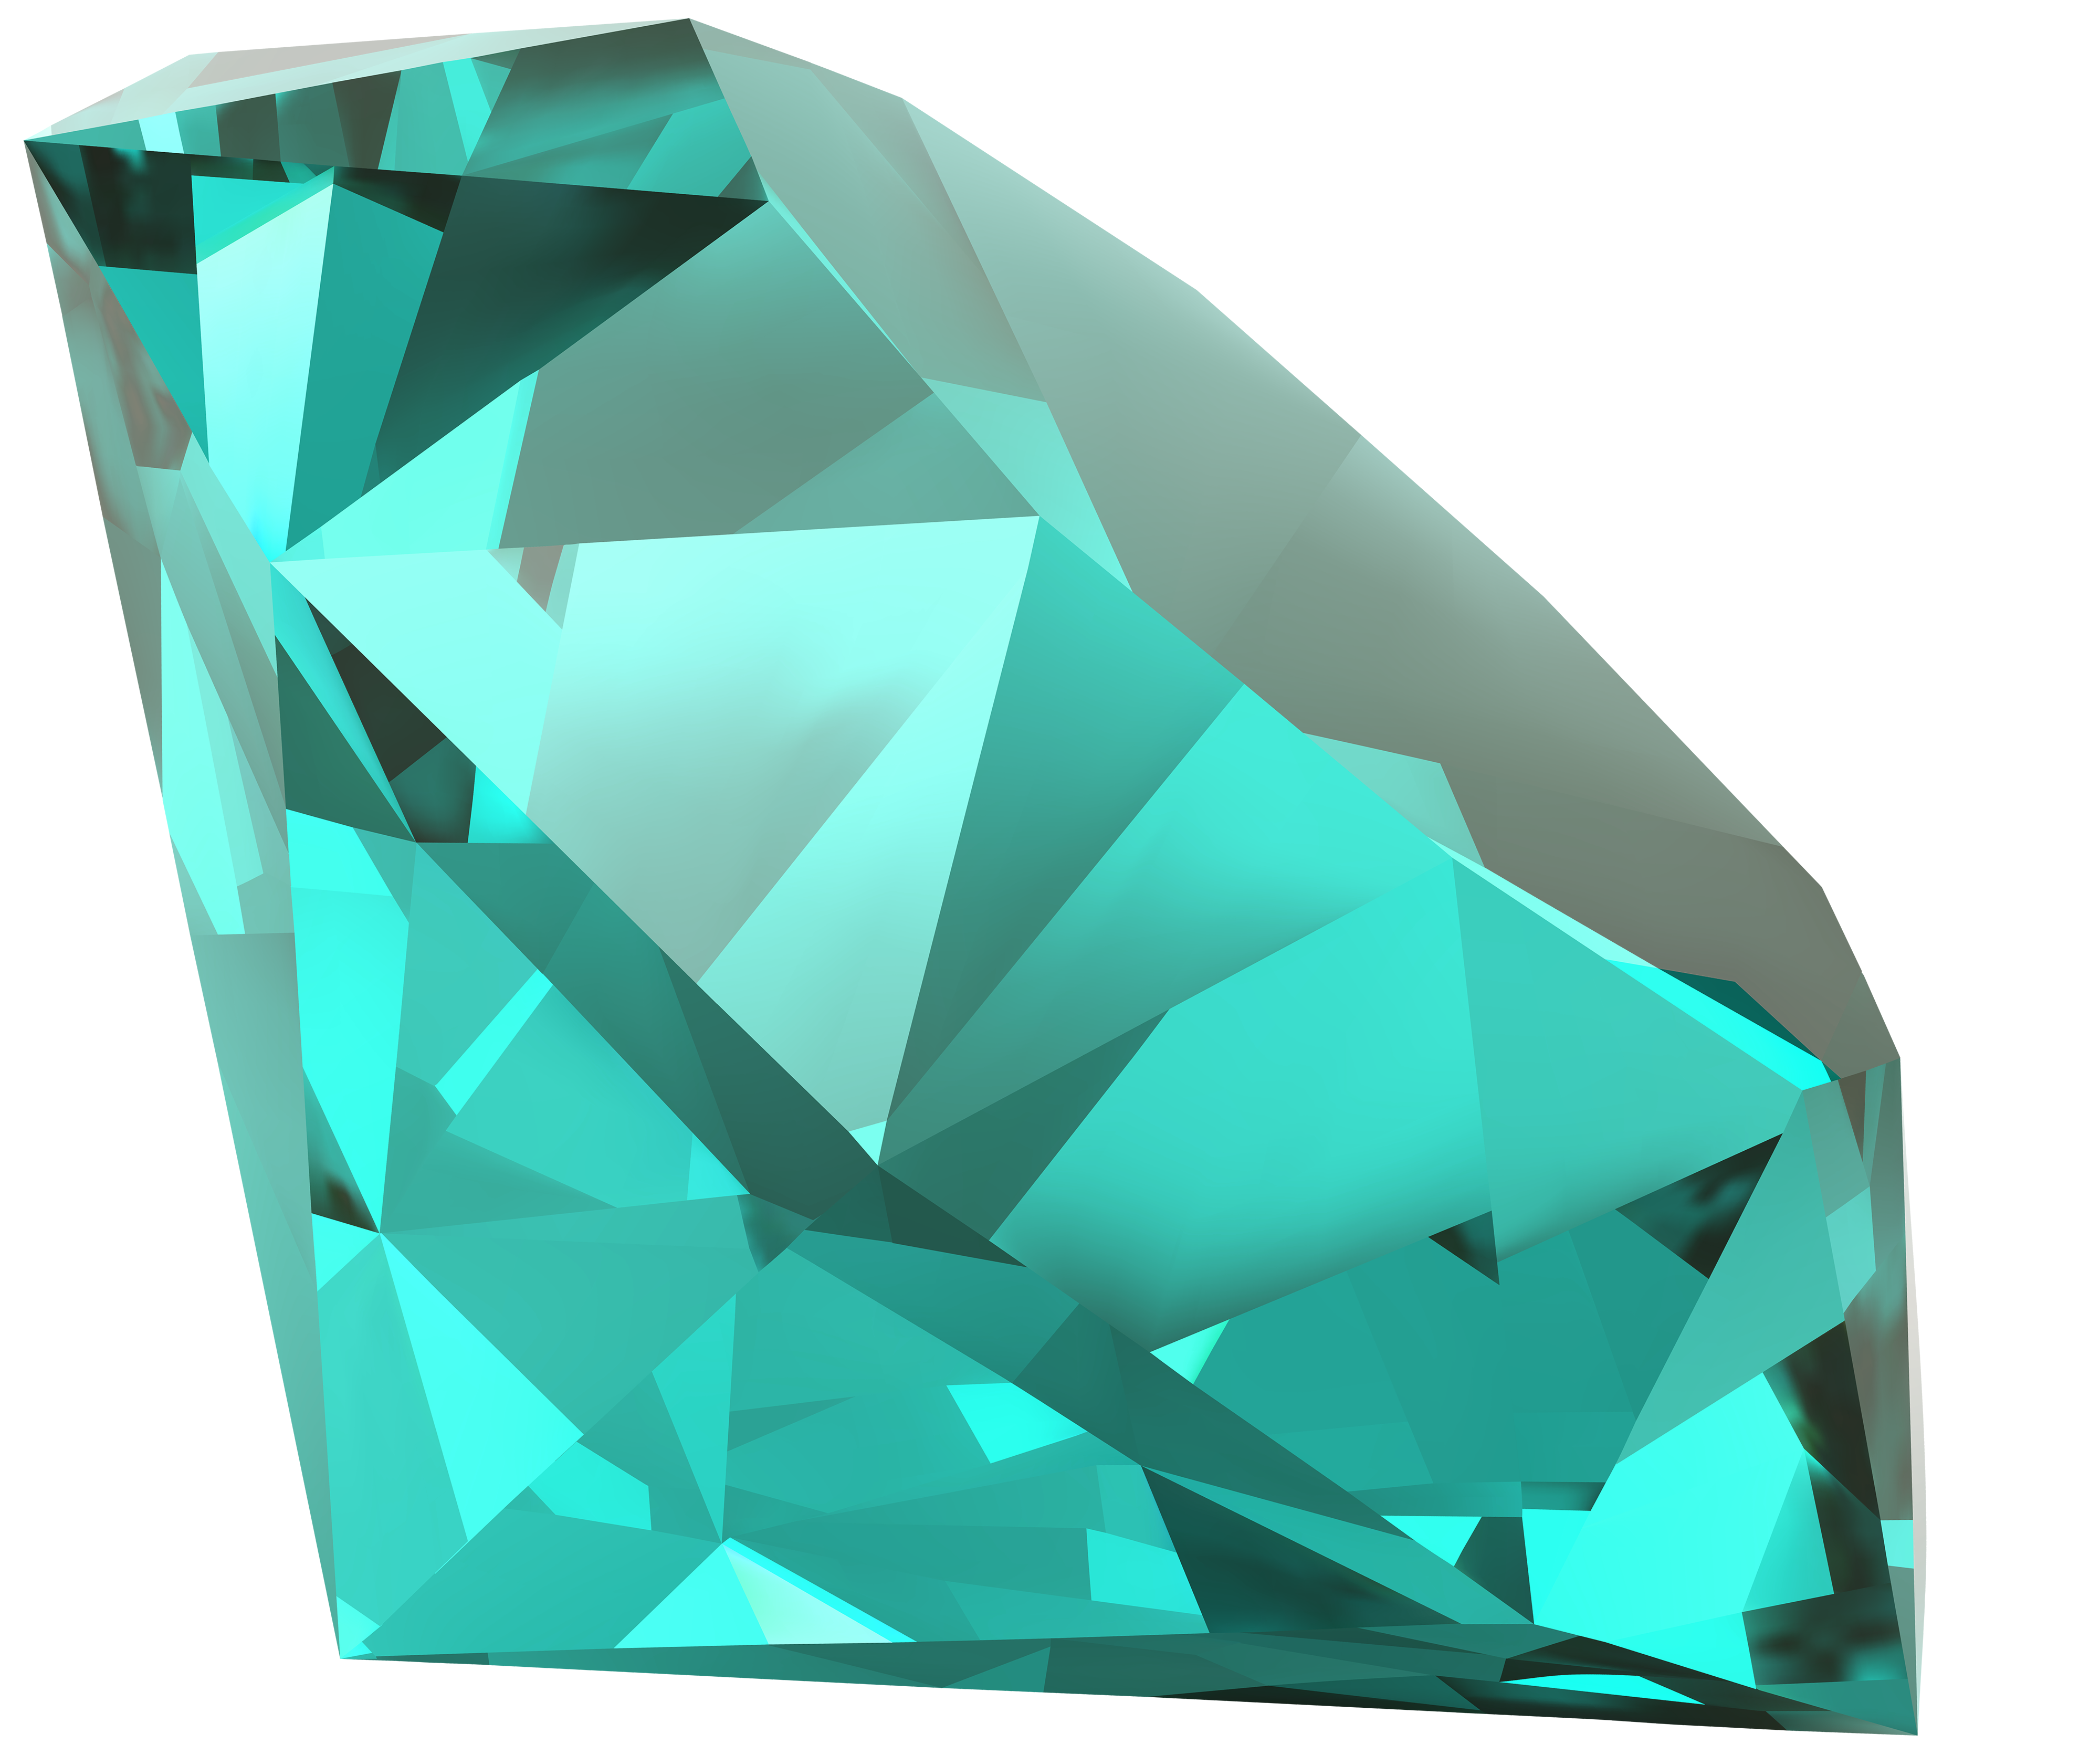 Crystals clipart diamond Blue Blue Clipart Clipart WEB